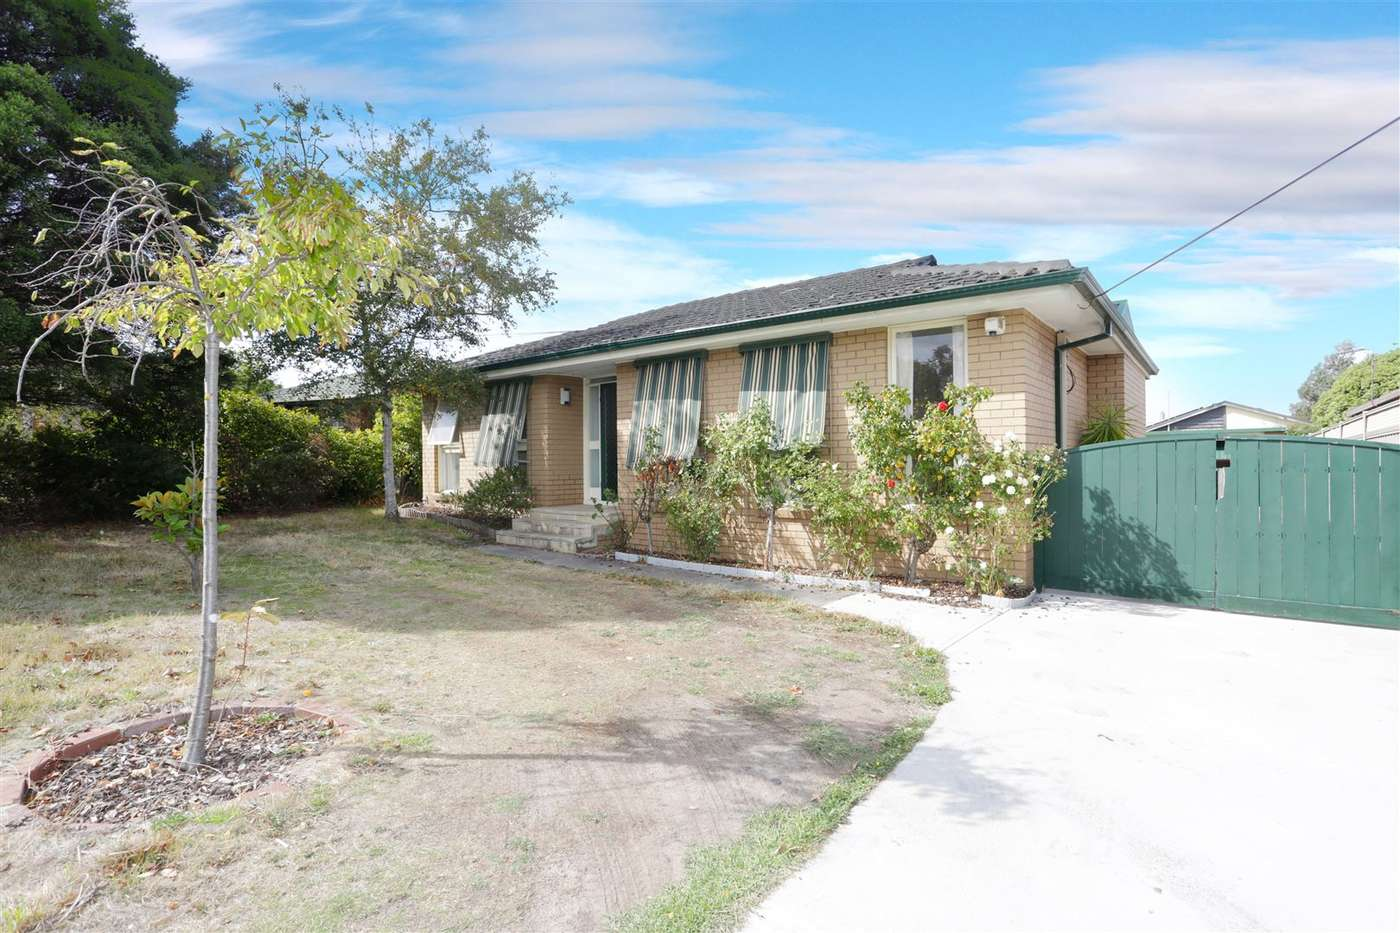 Main view of Homely house listing, 8 Drysdale Court,, Wheelers Hill, VIC 3150